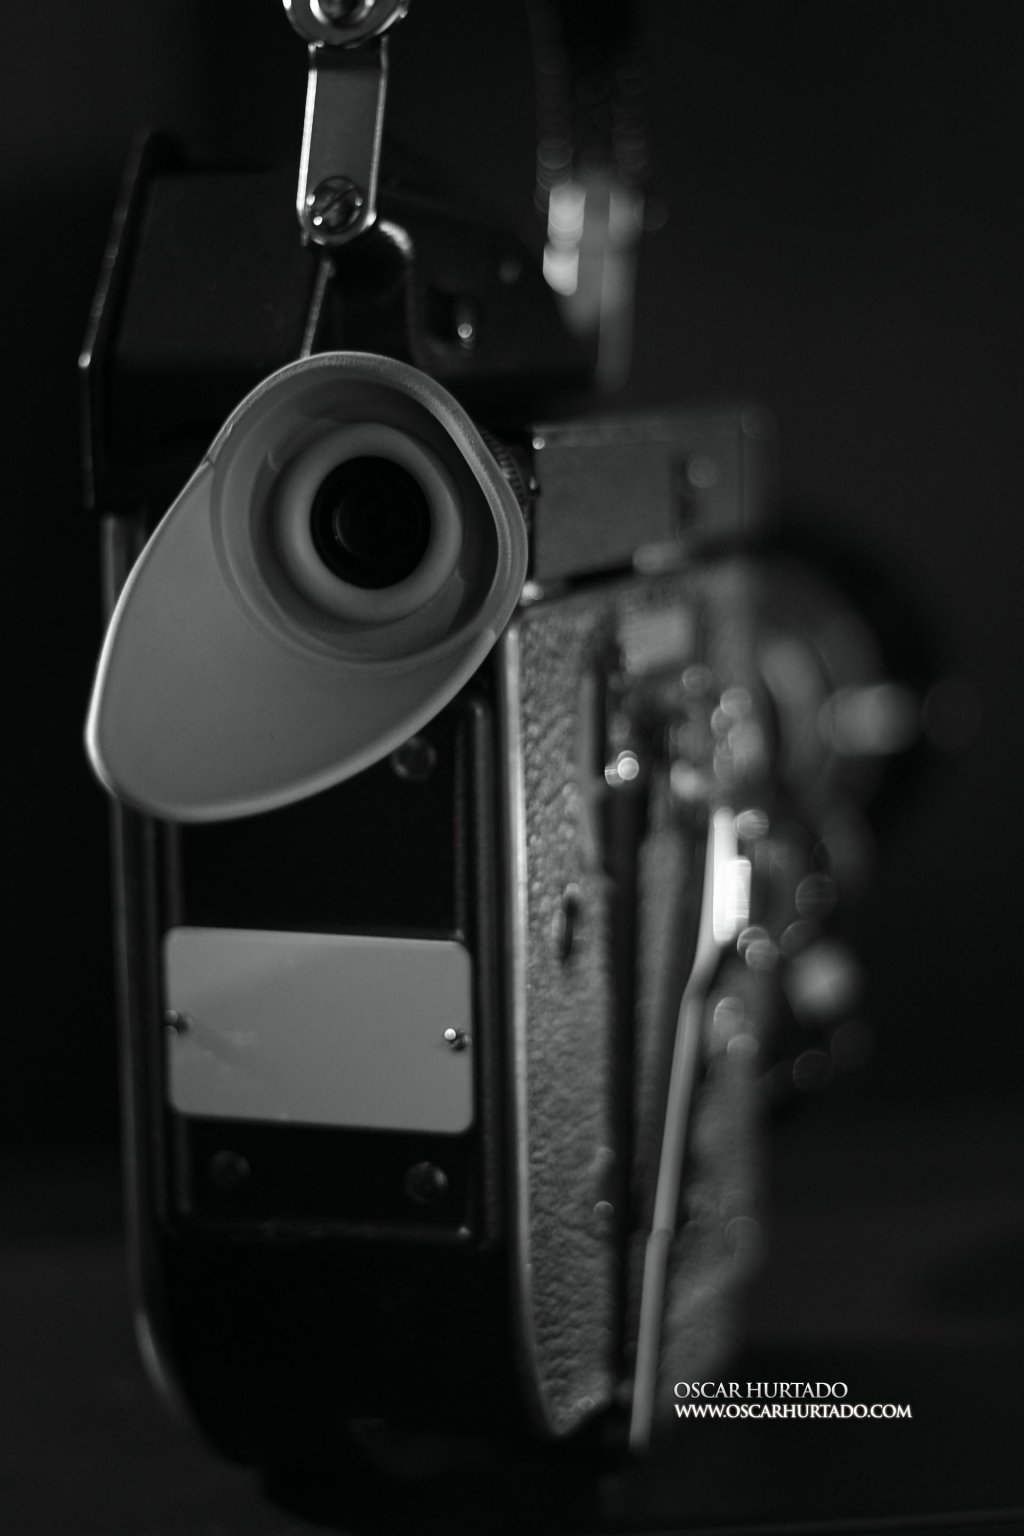 Rear view of a Bolex RX5 16mm camera